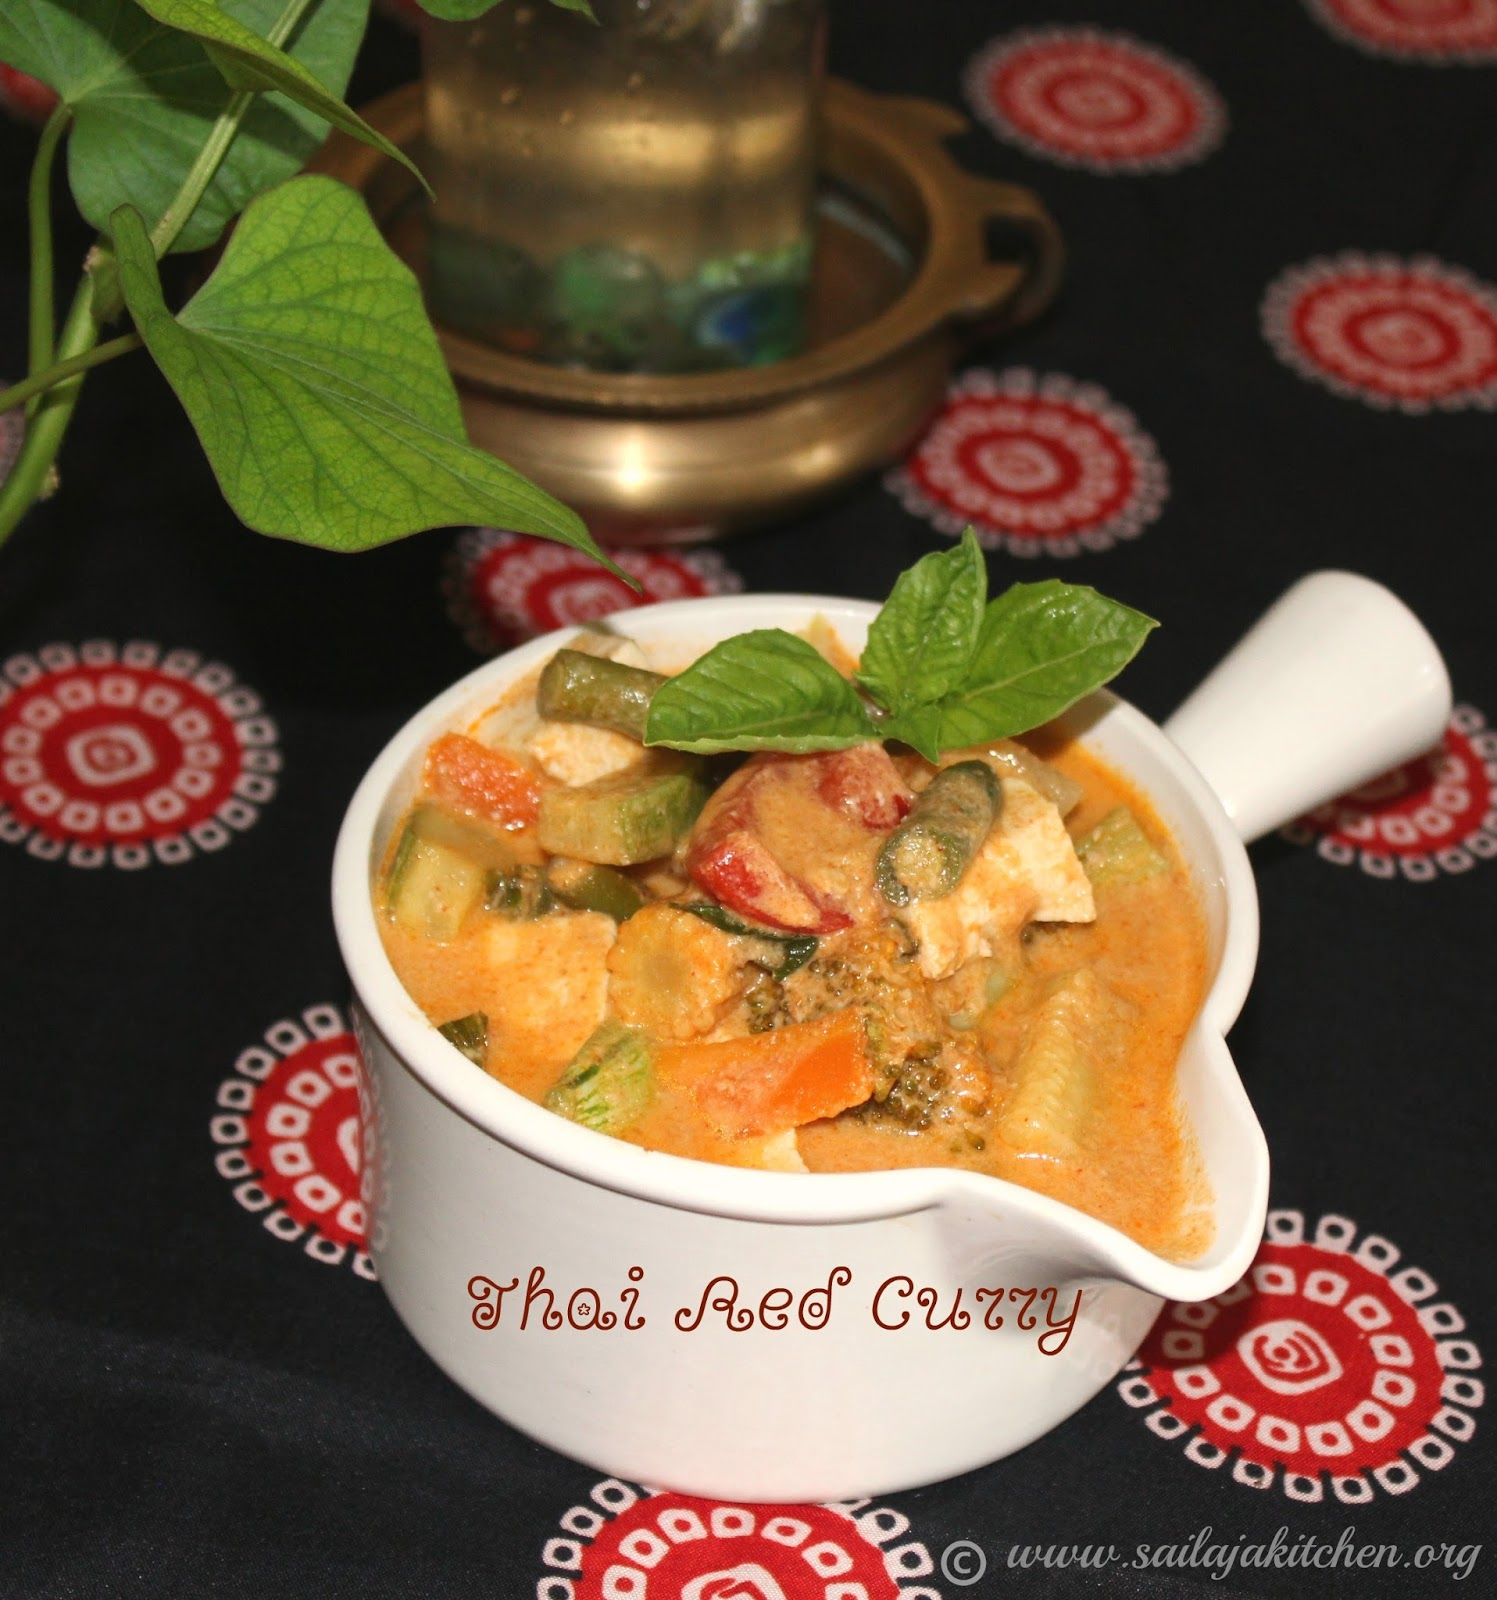 Sailaja Kitchen...A site for all food lovers!: International